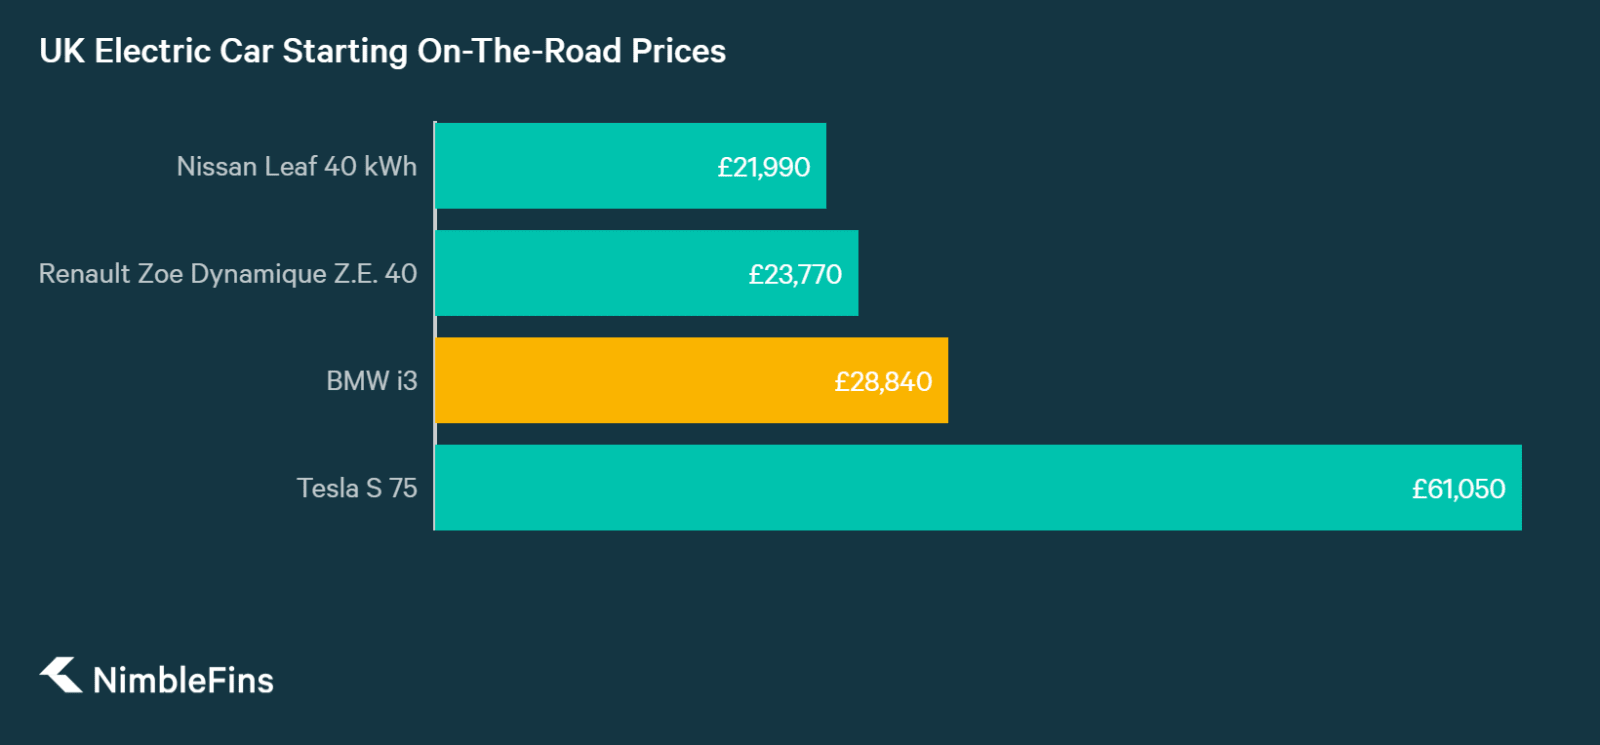 chart comparing the starting on-the-road prices of UK electric cars